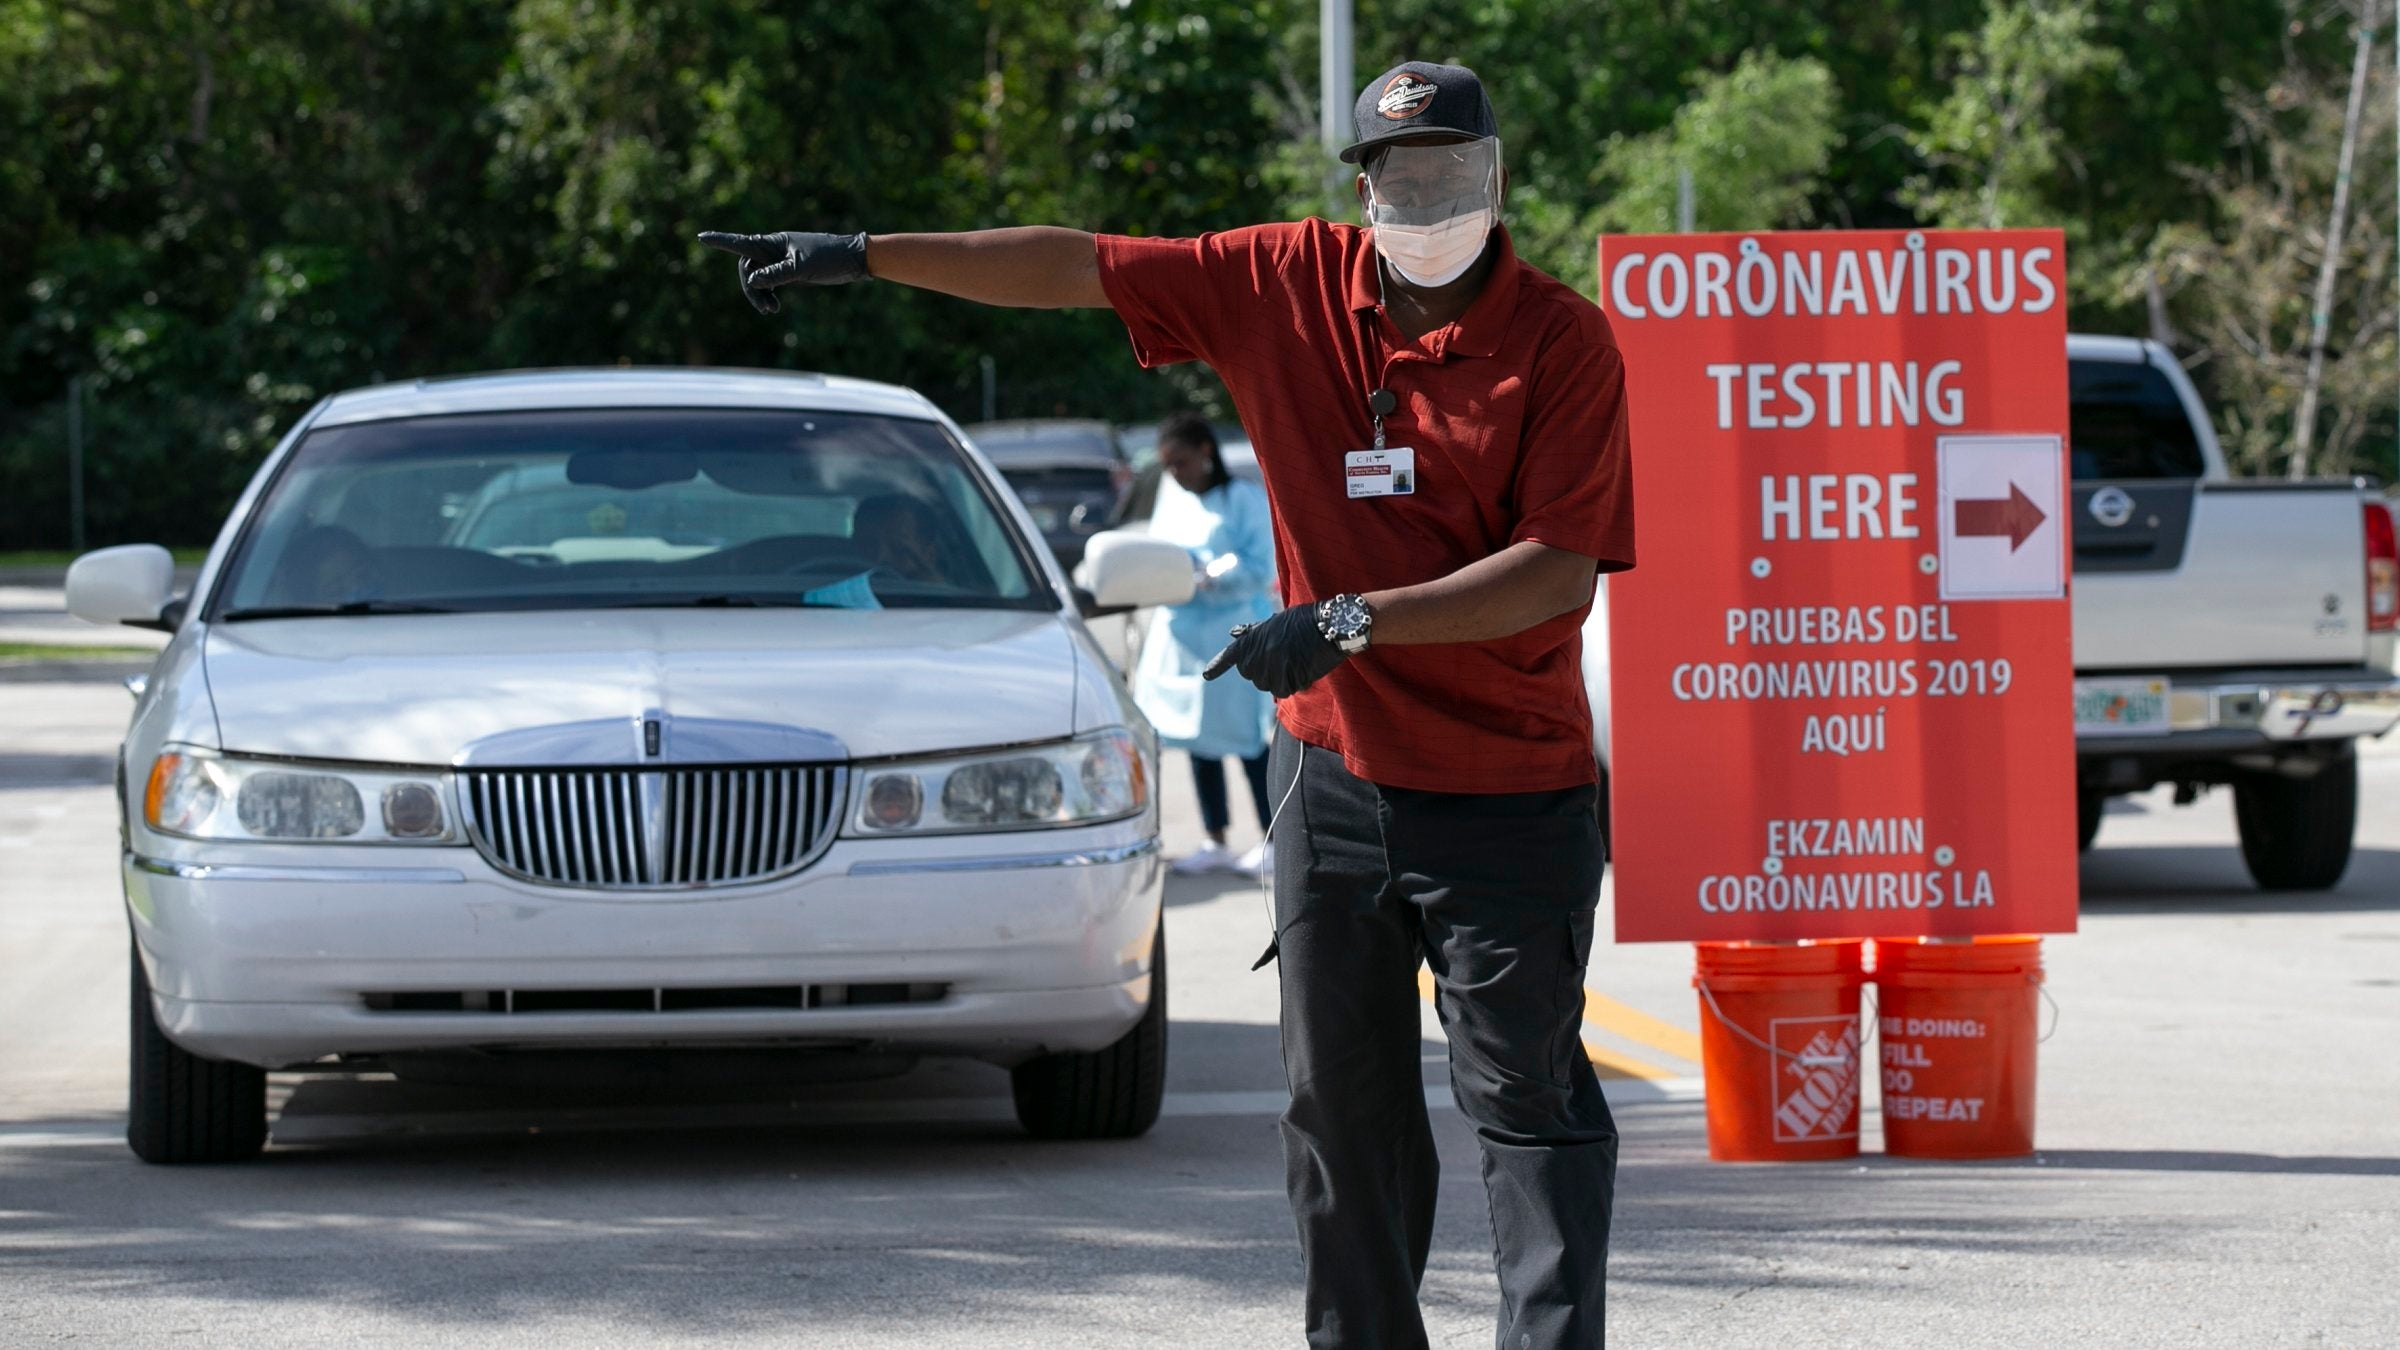 coronavirus testing facility- an nbc special will address questions about the illness